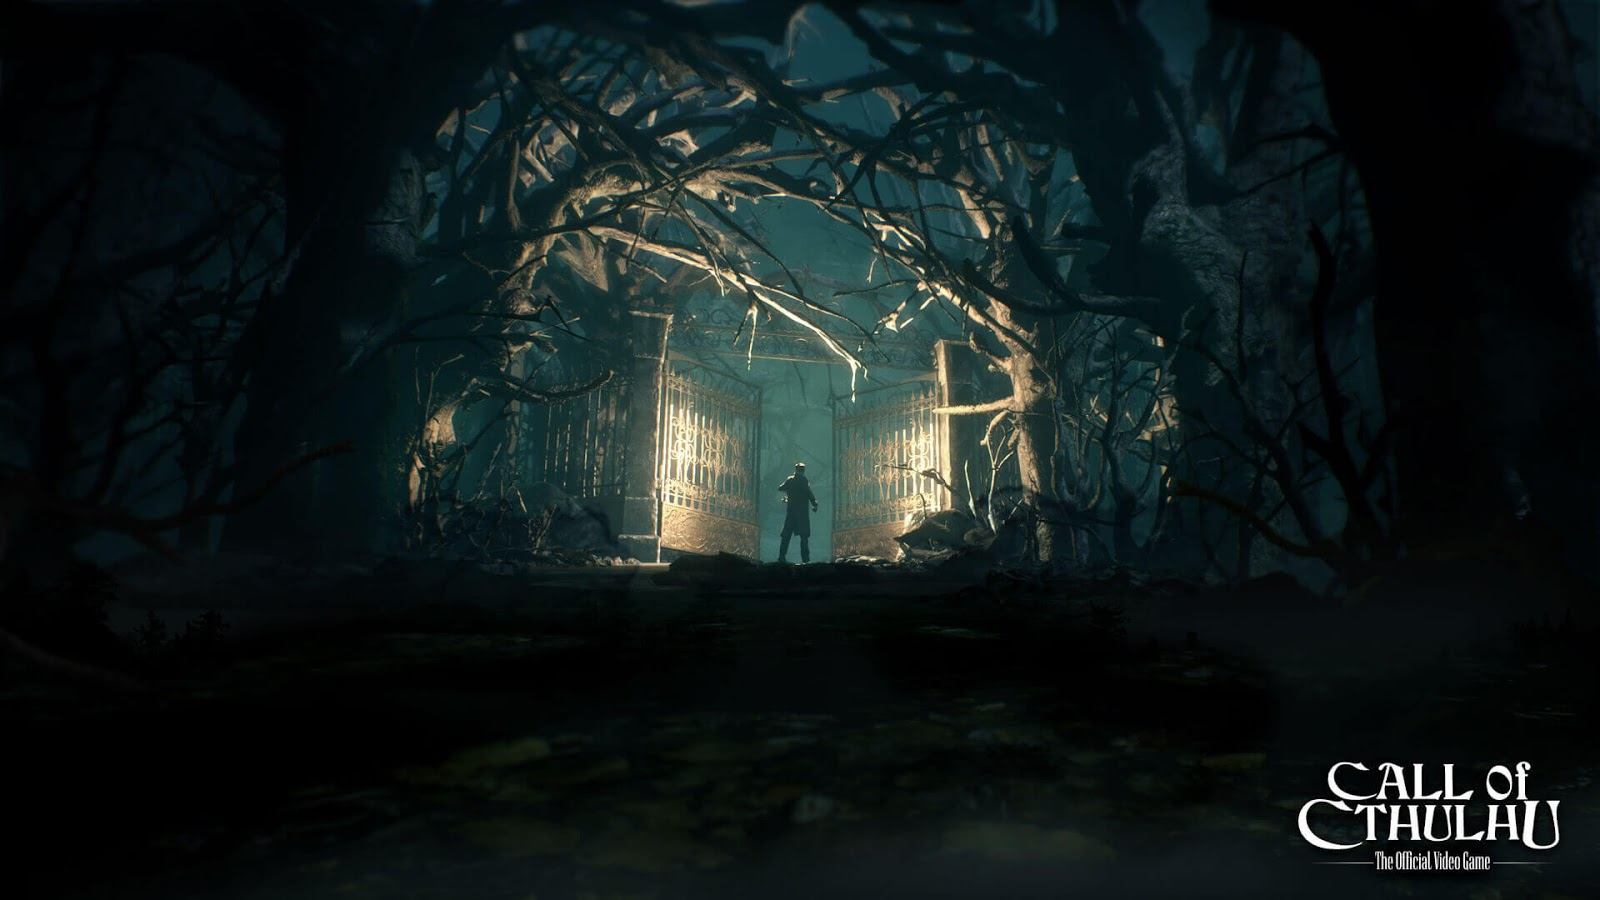 Steam leaks Call of Cthulhu October launch date